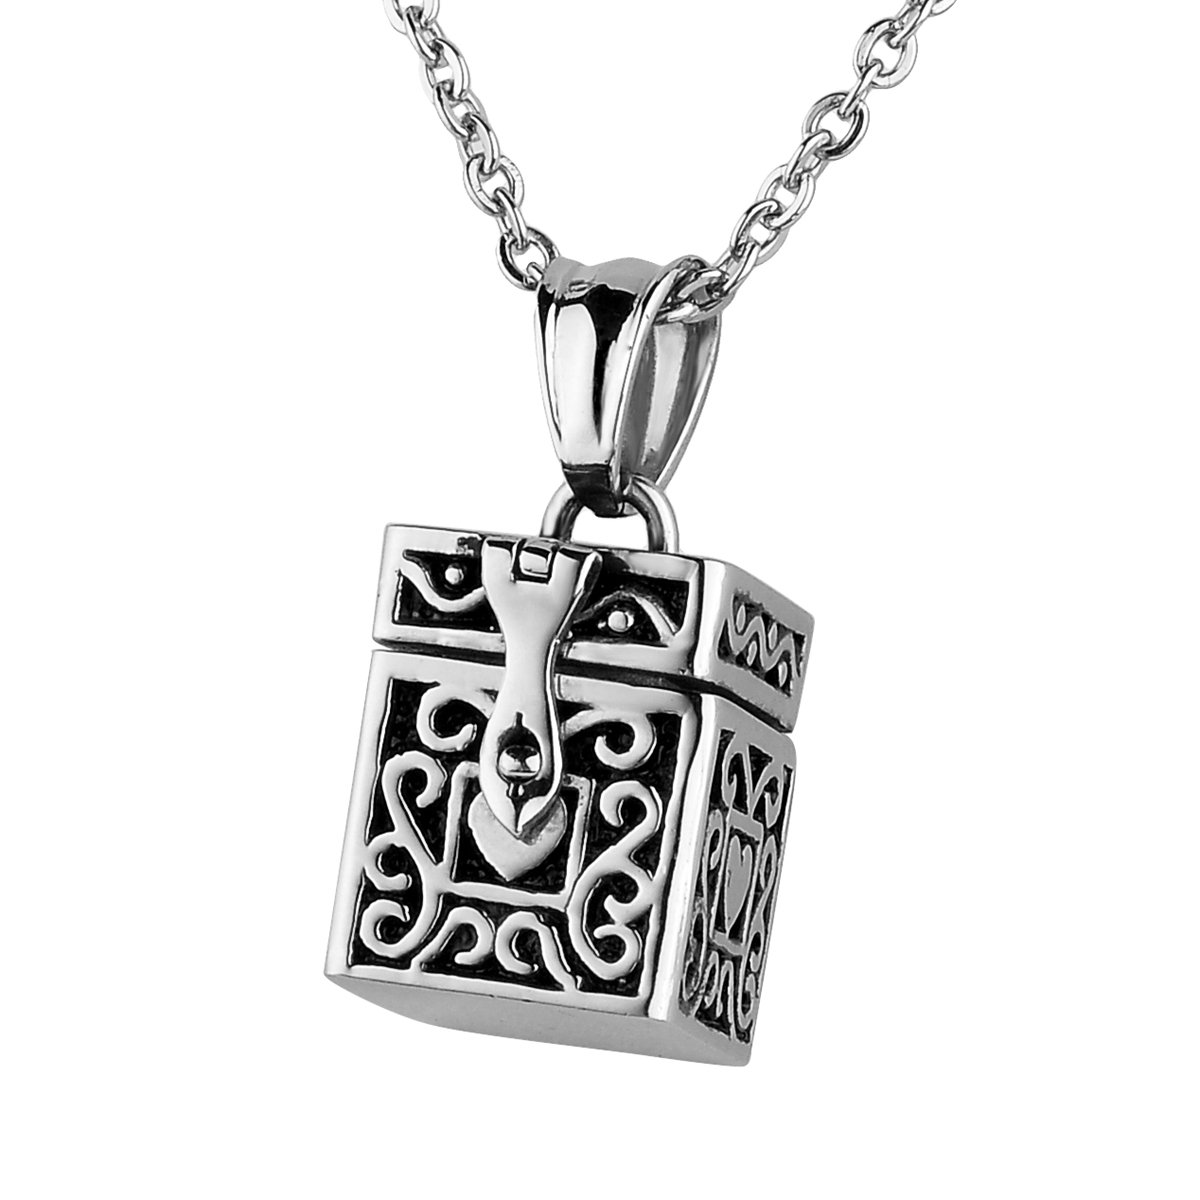 prayer box jewelry pendant god box charms